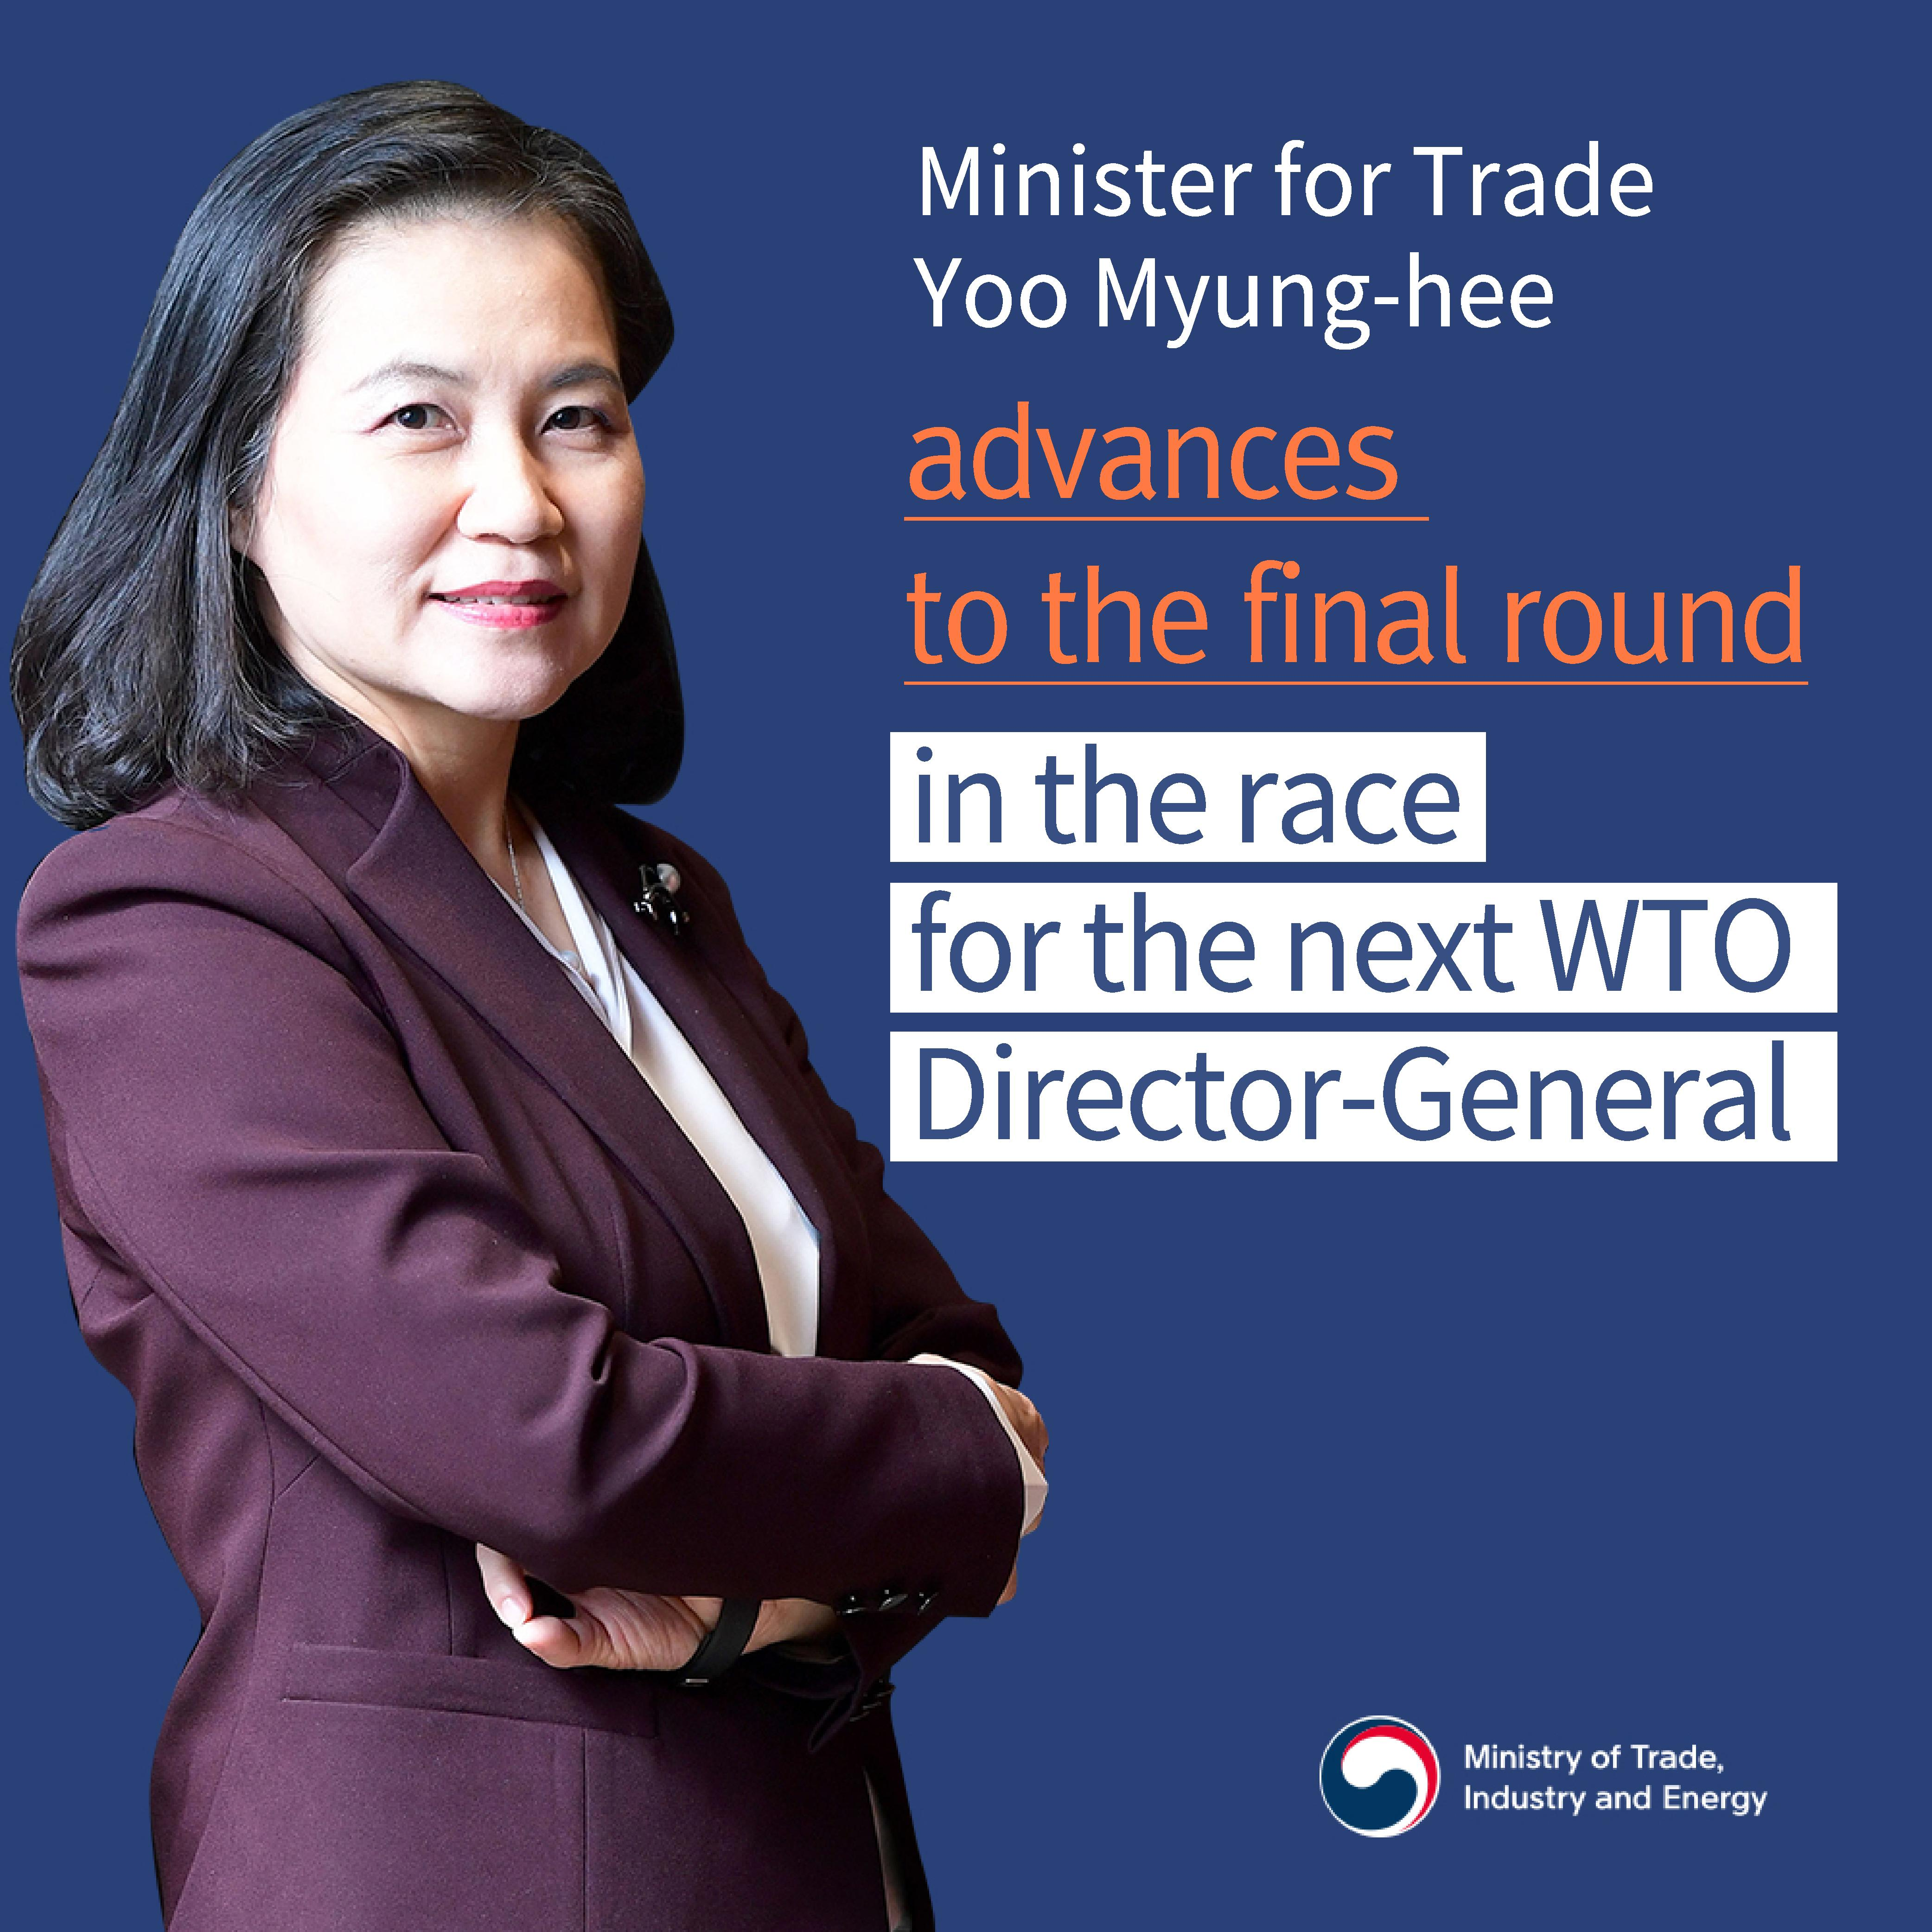 Trade Minister Yoo Myung-hee advances to the final round in the race for the next WTO DG Image 0